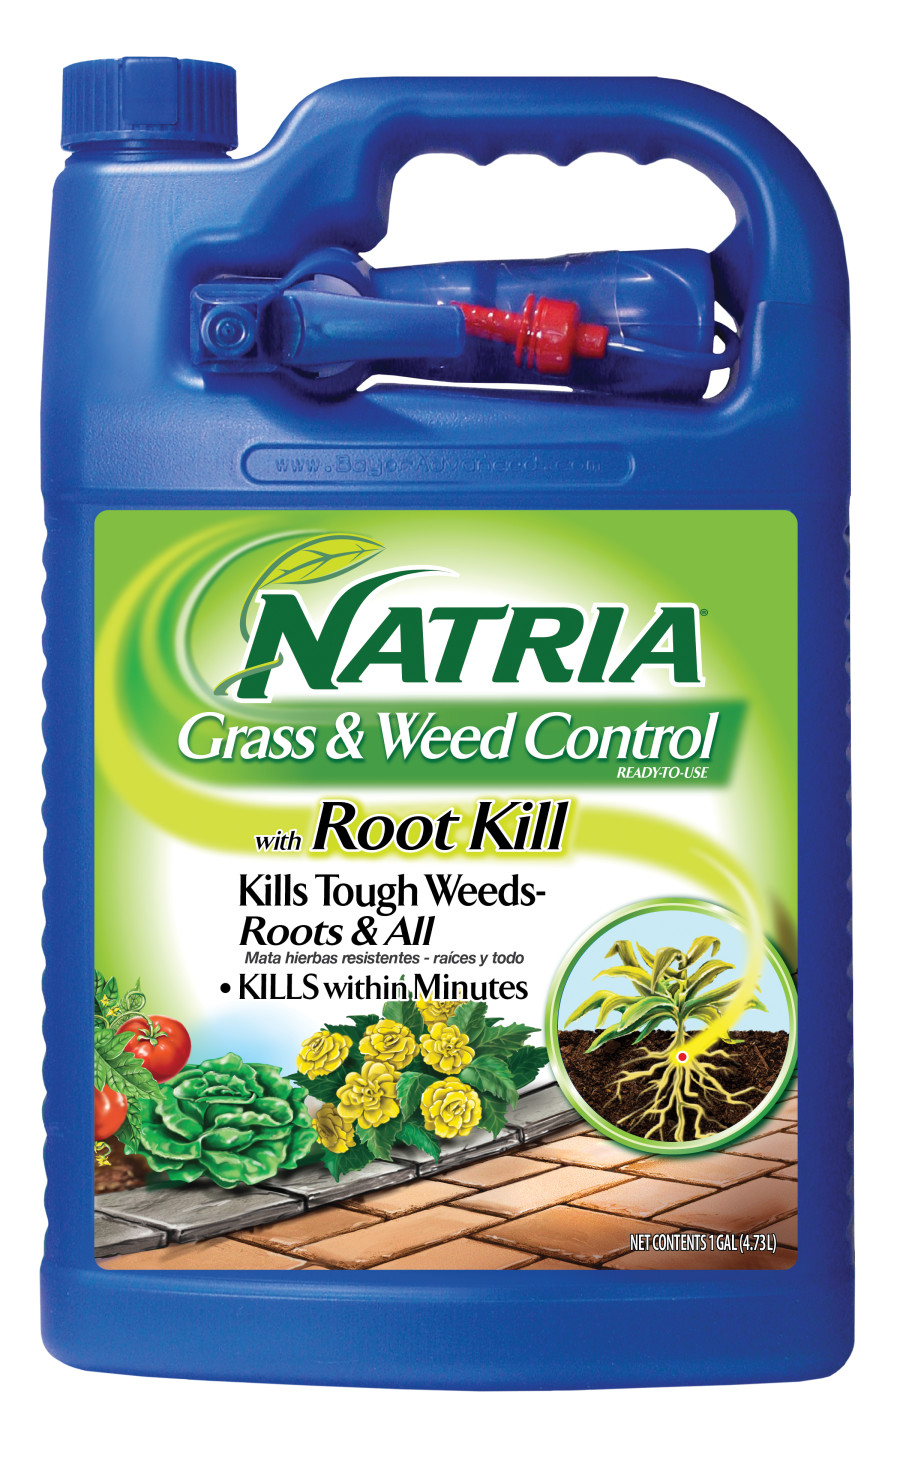 BioAdvanced Natria Grass & Weed Control w/Root Kill Ready to Use Nested Sprayer Blue Bottle 4ea/1 gal